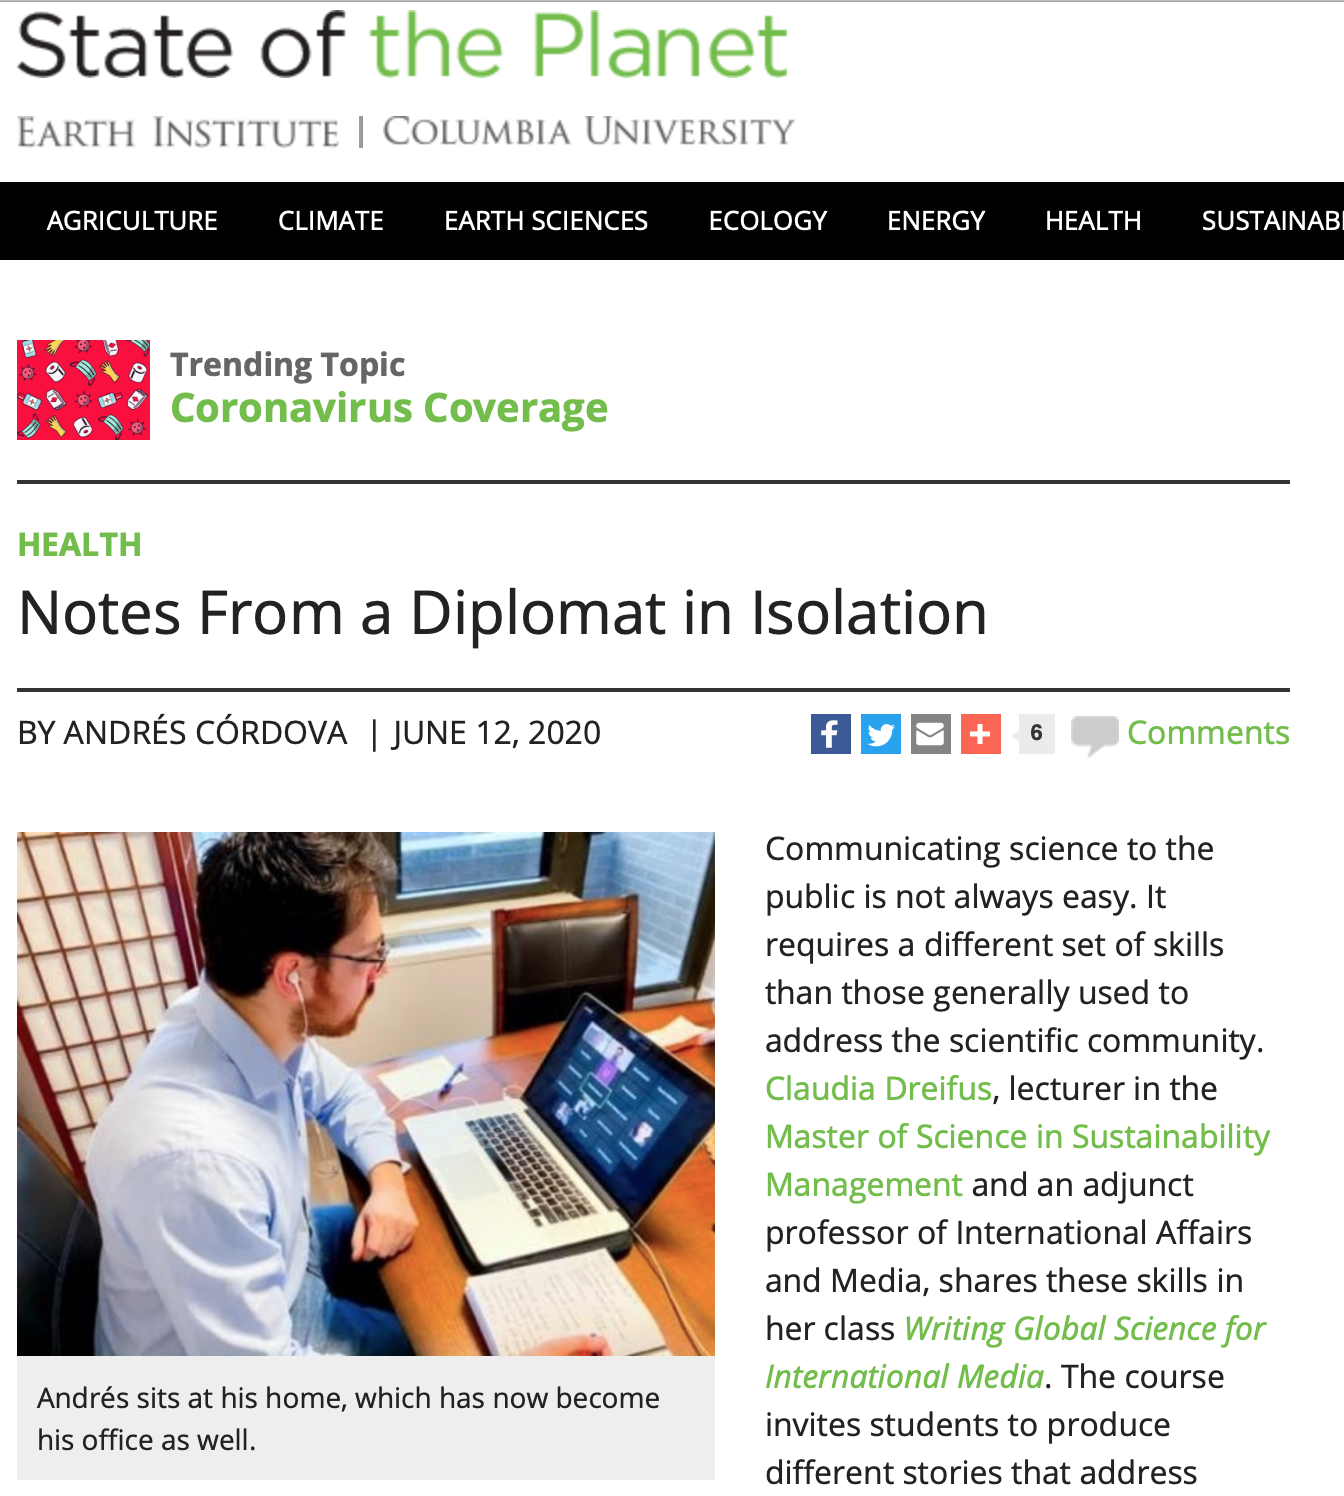 Notes from a Diplomat in Isolation